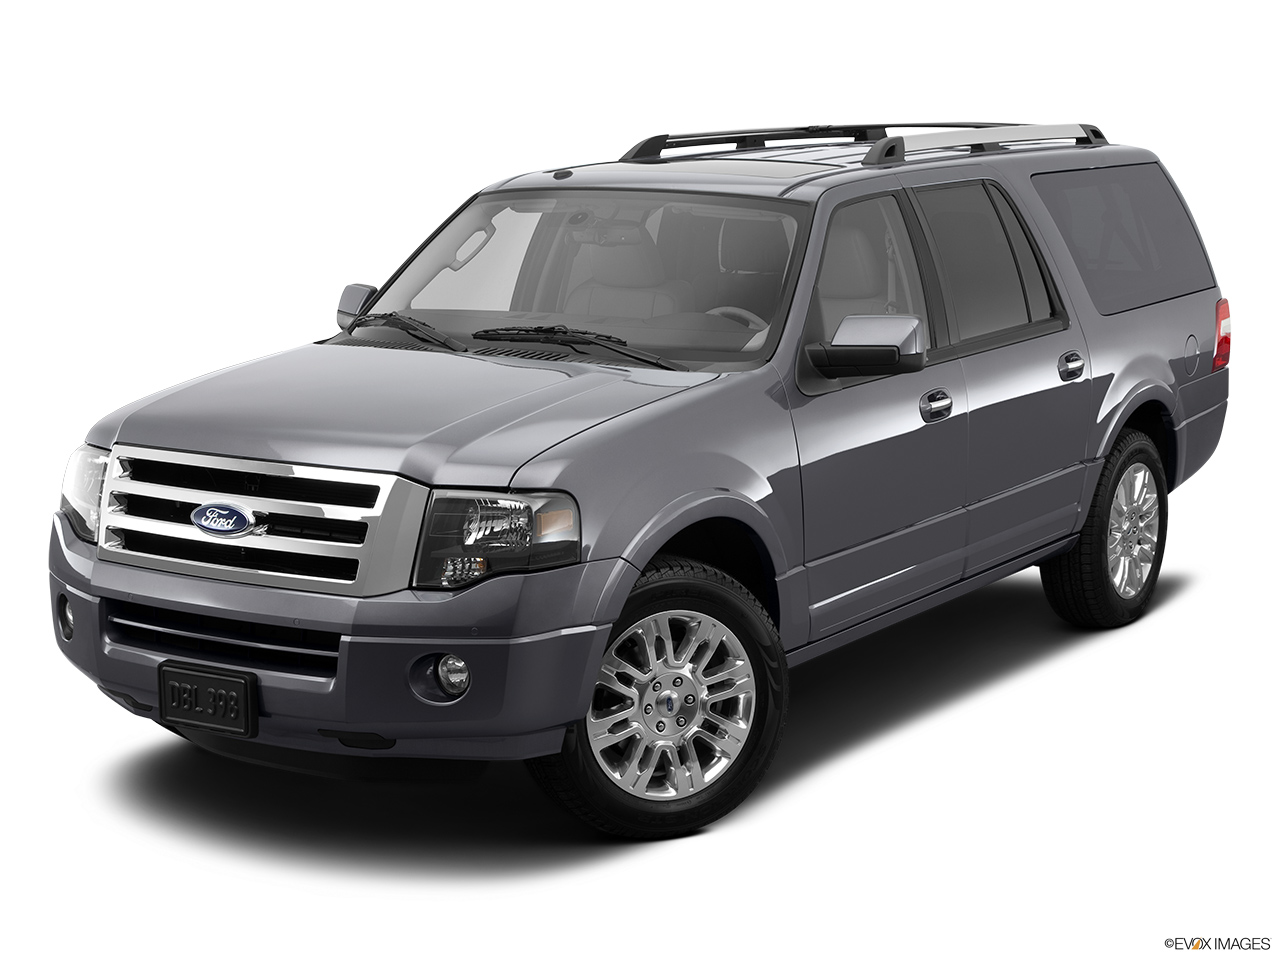 2014 ford expedition el 2wd xlt. Black Bedroom Furniture Sets. Home Design Ideas